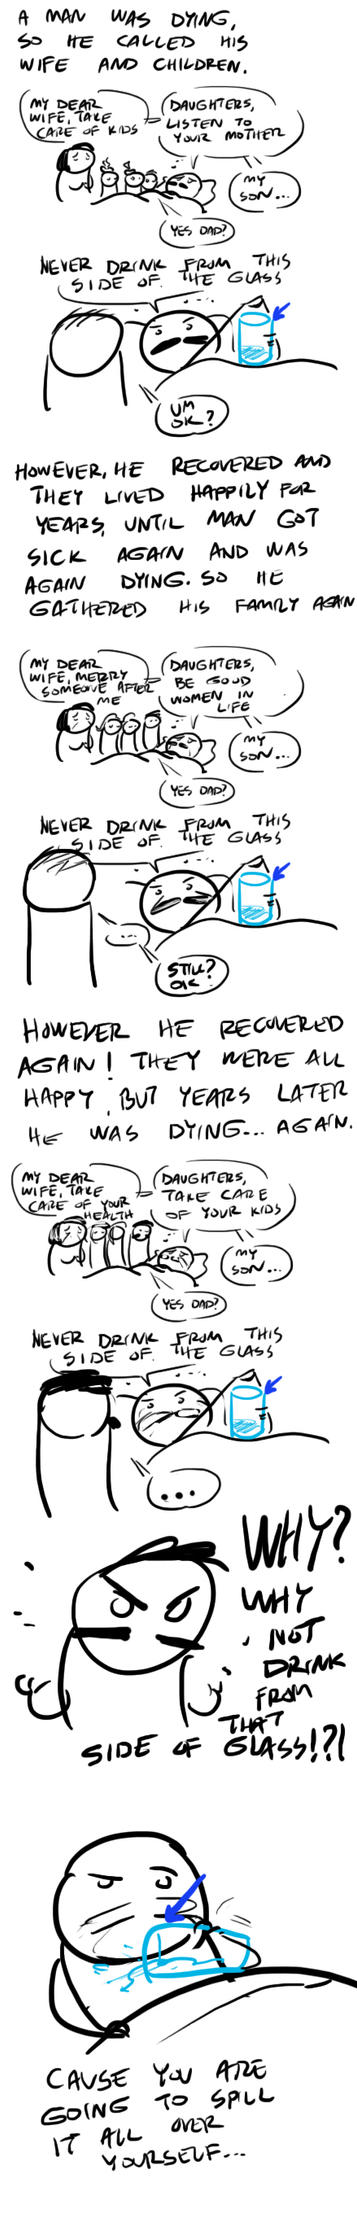 Dad joke by Ritualist